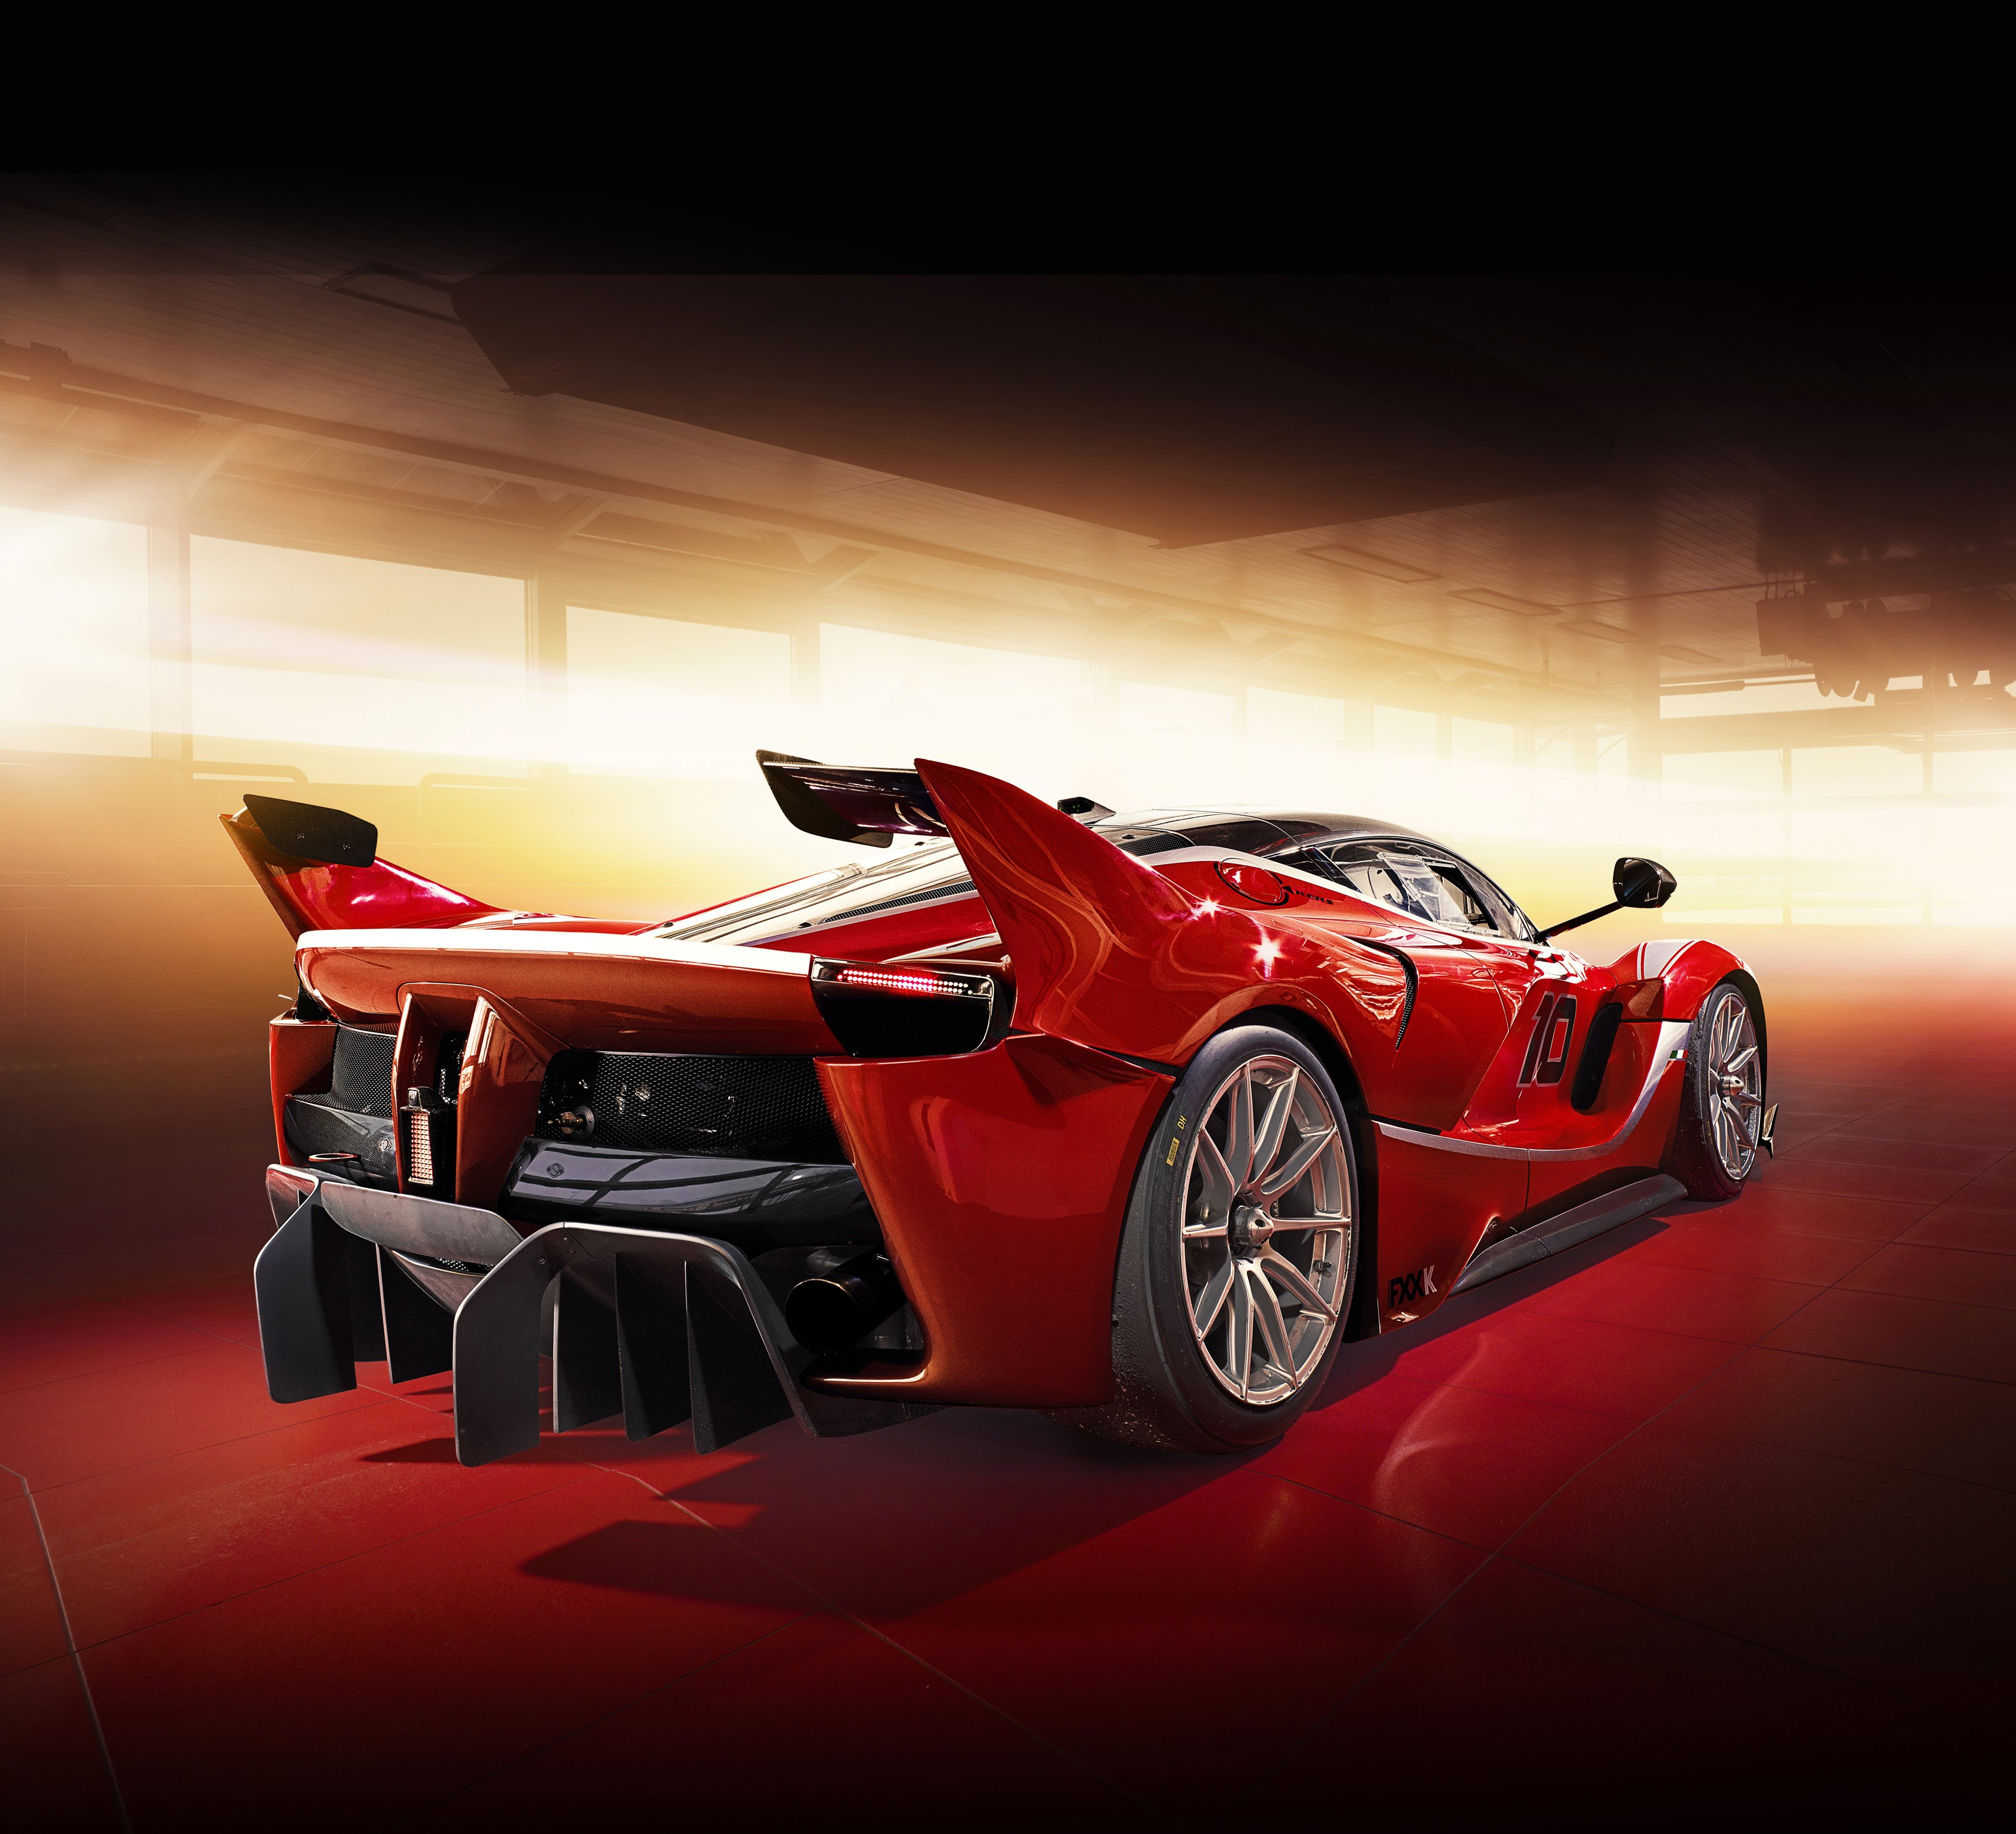 2015 Ferrari FXX K Supercar Fxxk Wallpaper